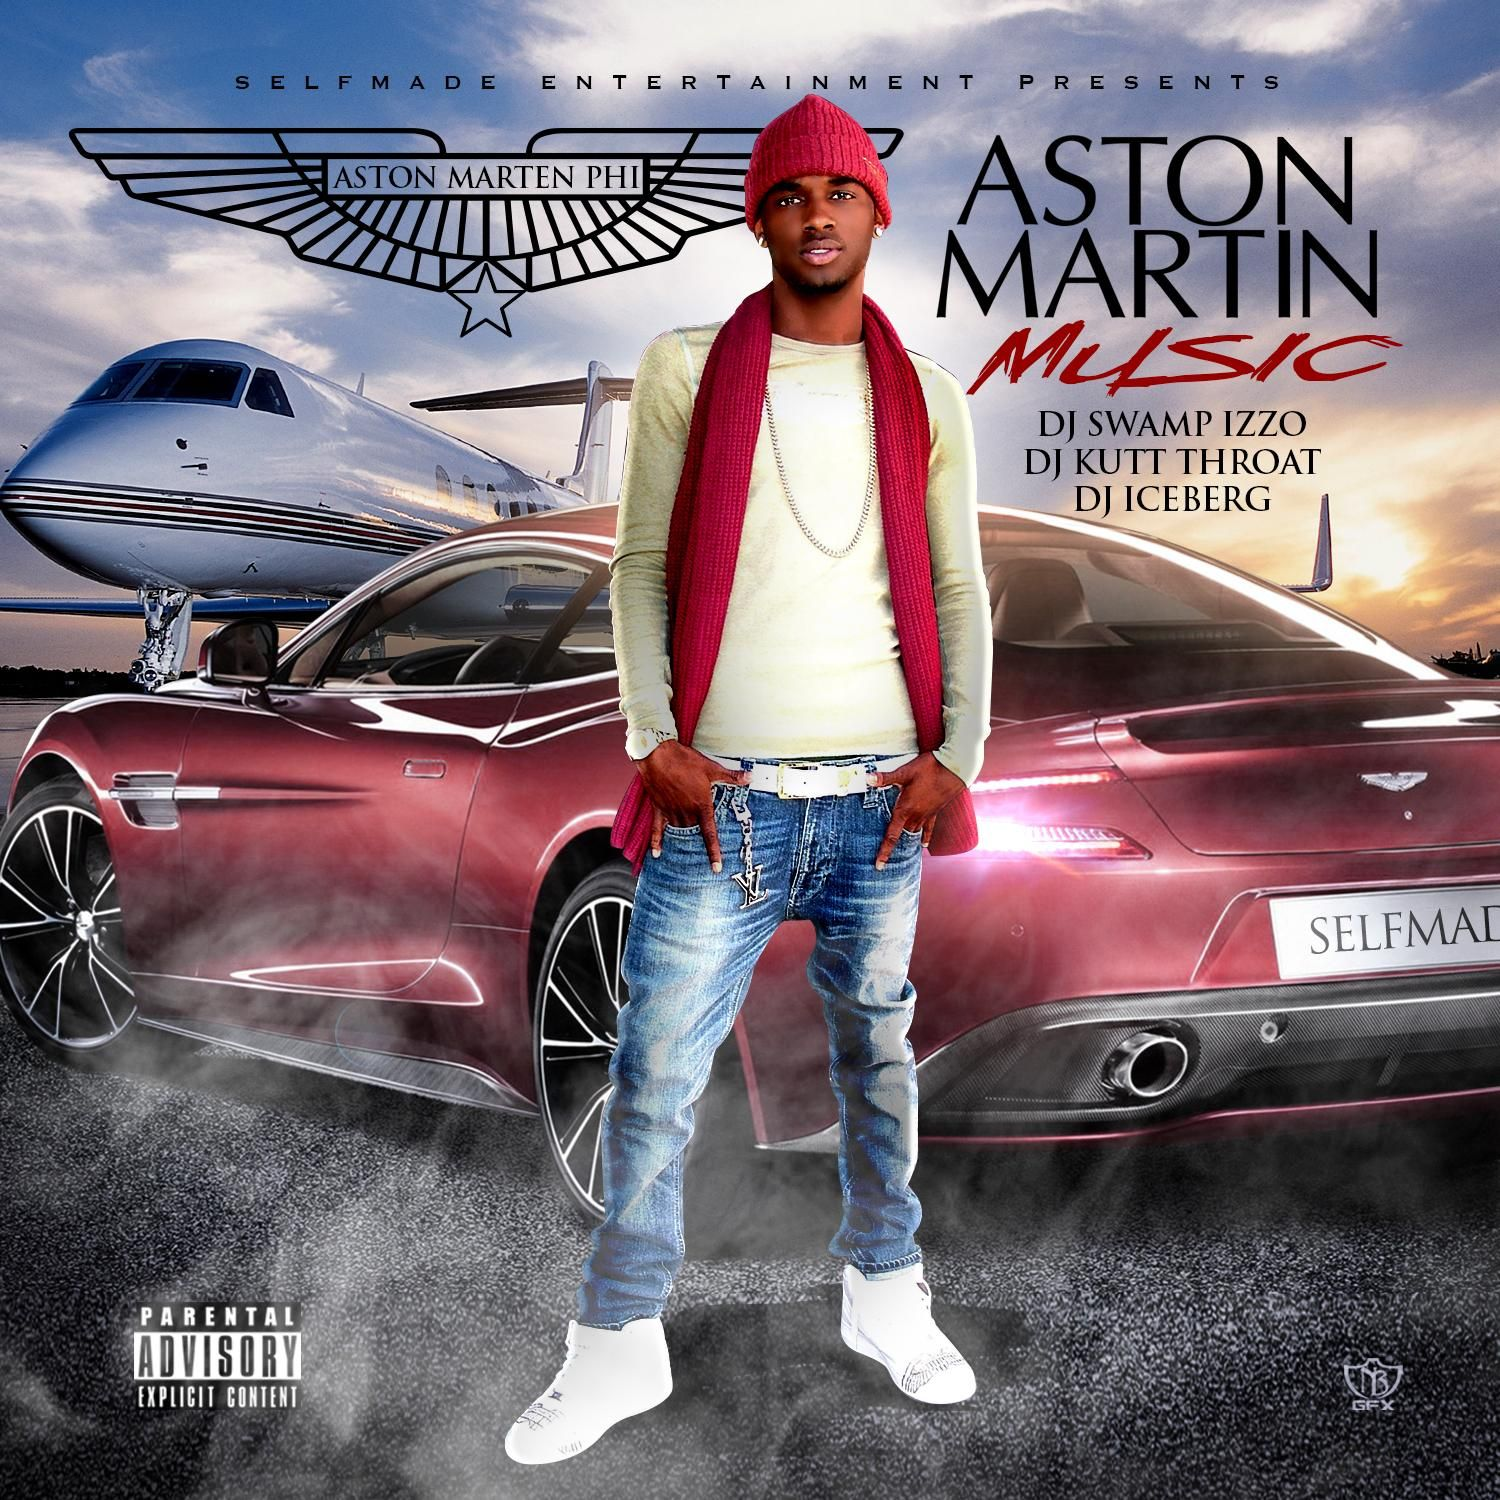 aston marten phi aston martin music ft strap da fool downloa. Cars Review. Best American Auto & Cars Review